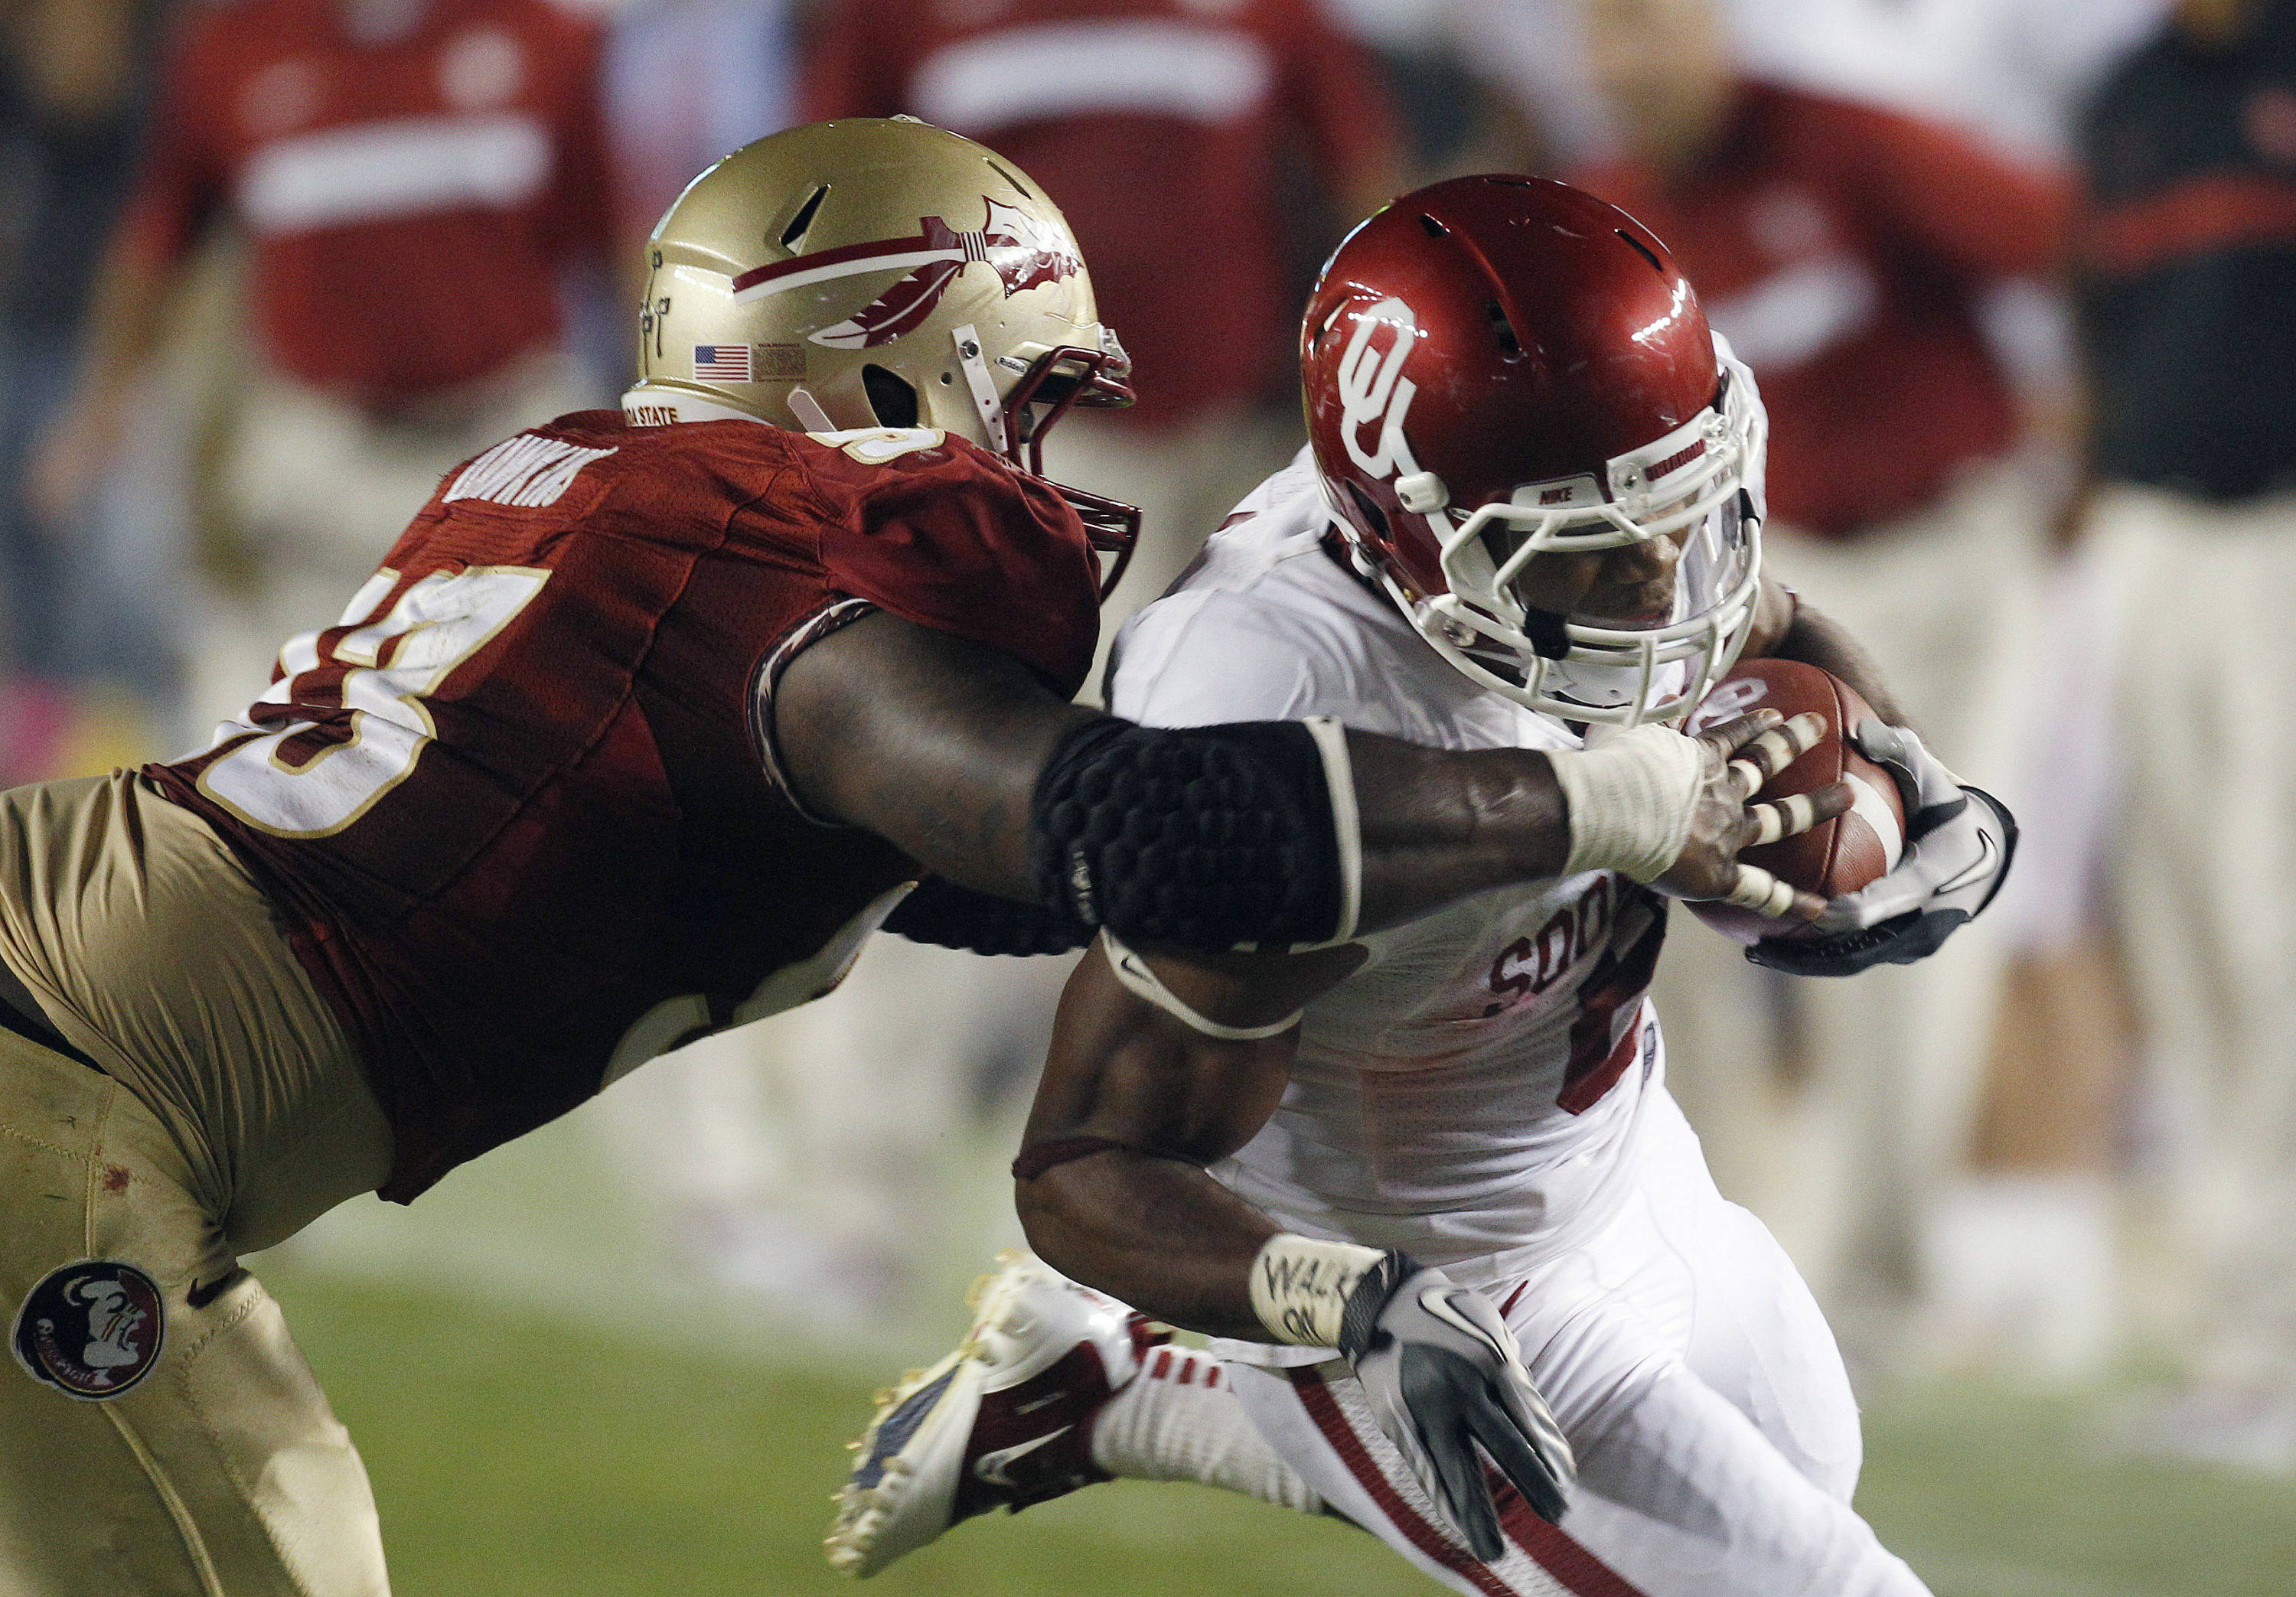 Oklahoma running back Dominique Whaley (8) gets shoved out-of-bounds by Florida State defensive tackle Everett Dawkins (93) during the first quarter. (AP Photo/Chris O'Meara)